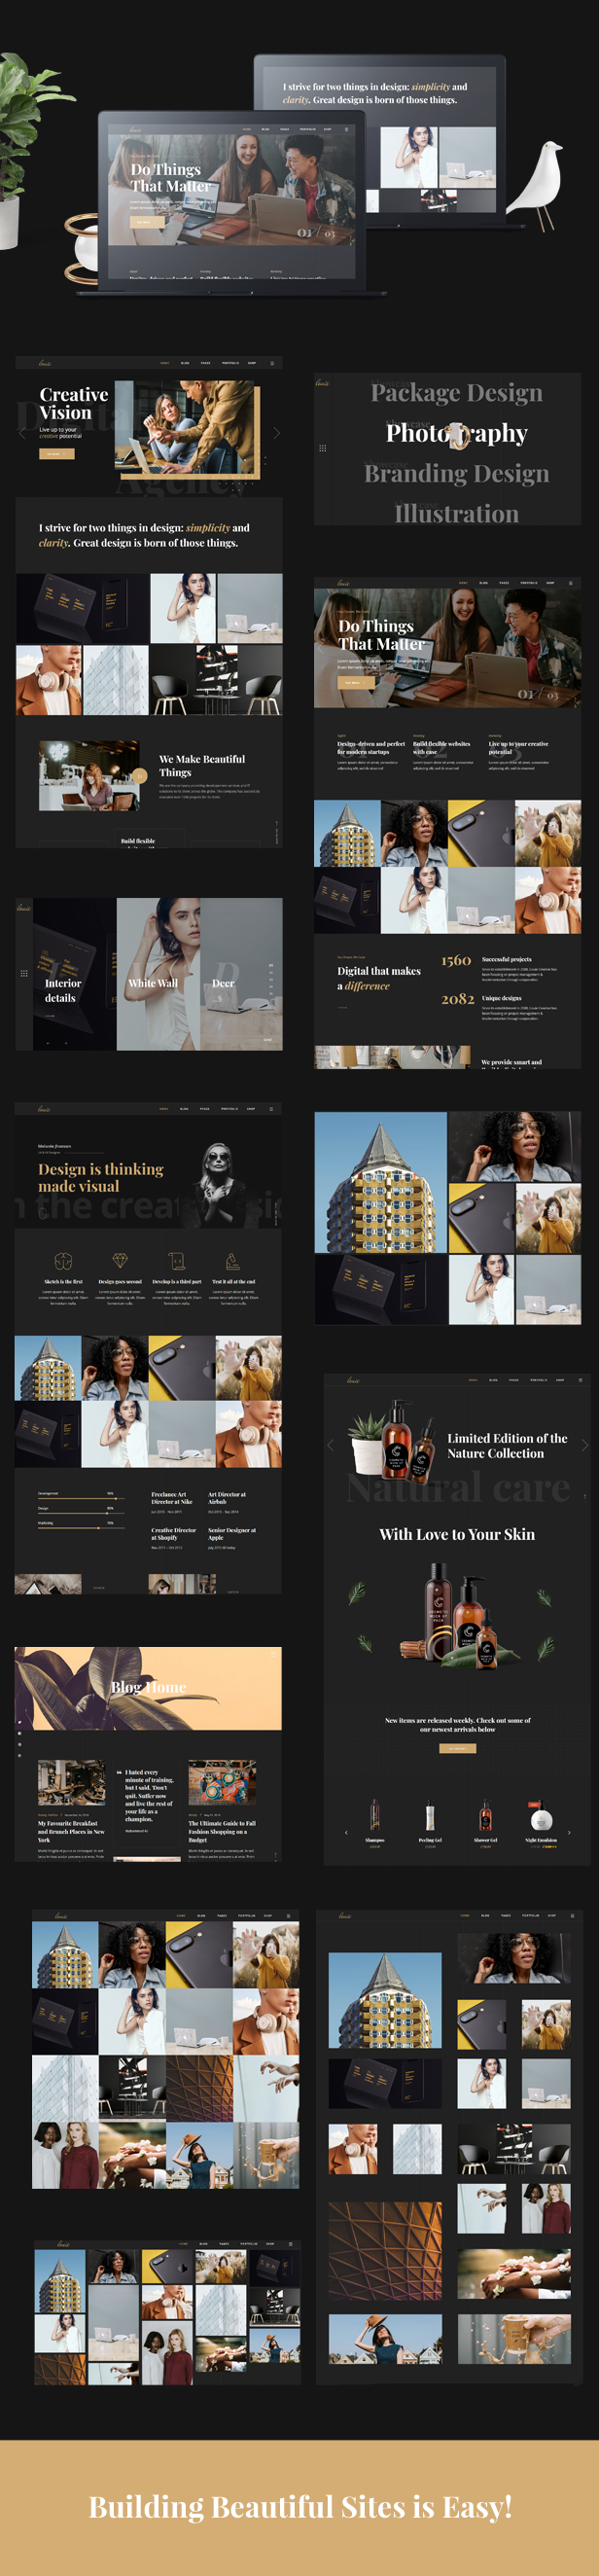 Louie - Modern Portfolio Theme for Agencies - 1  Download Louie – Modern Portfolio Theme for Agencies nulled louie promo